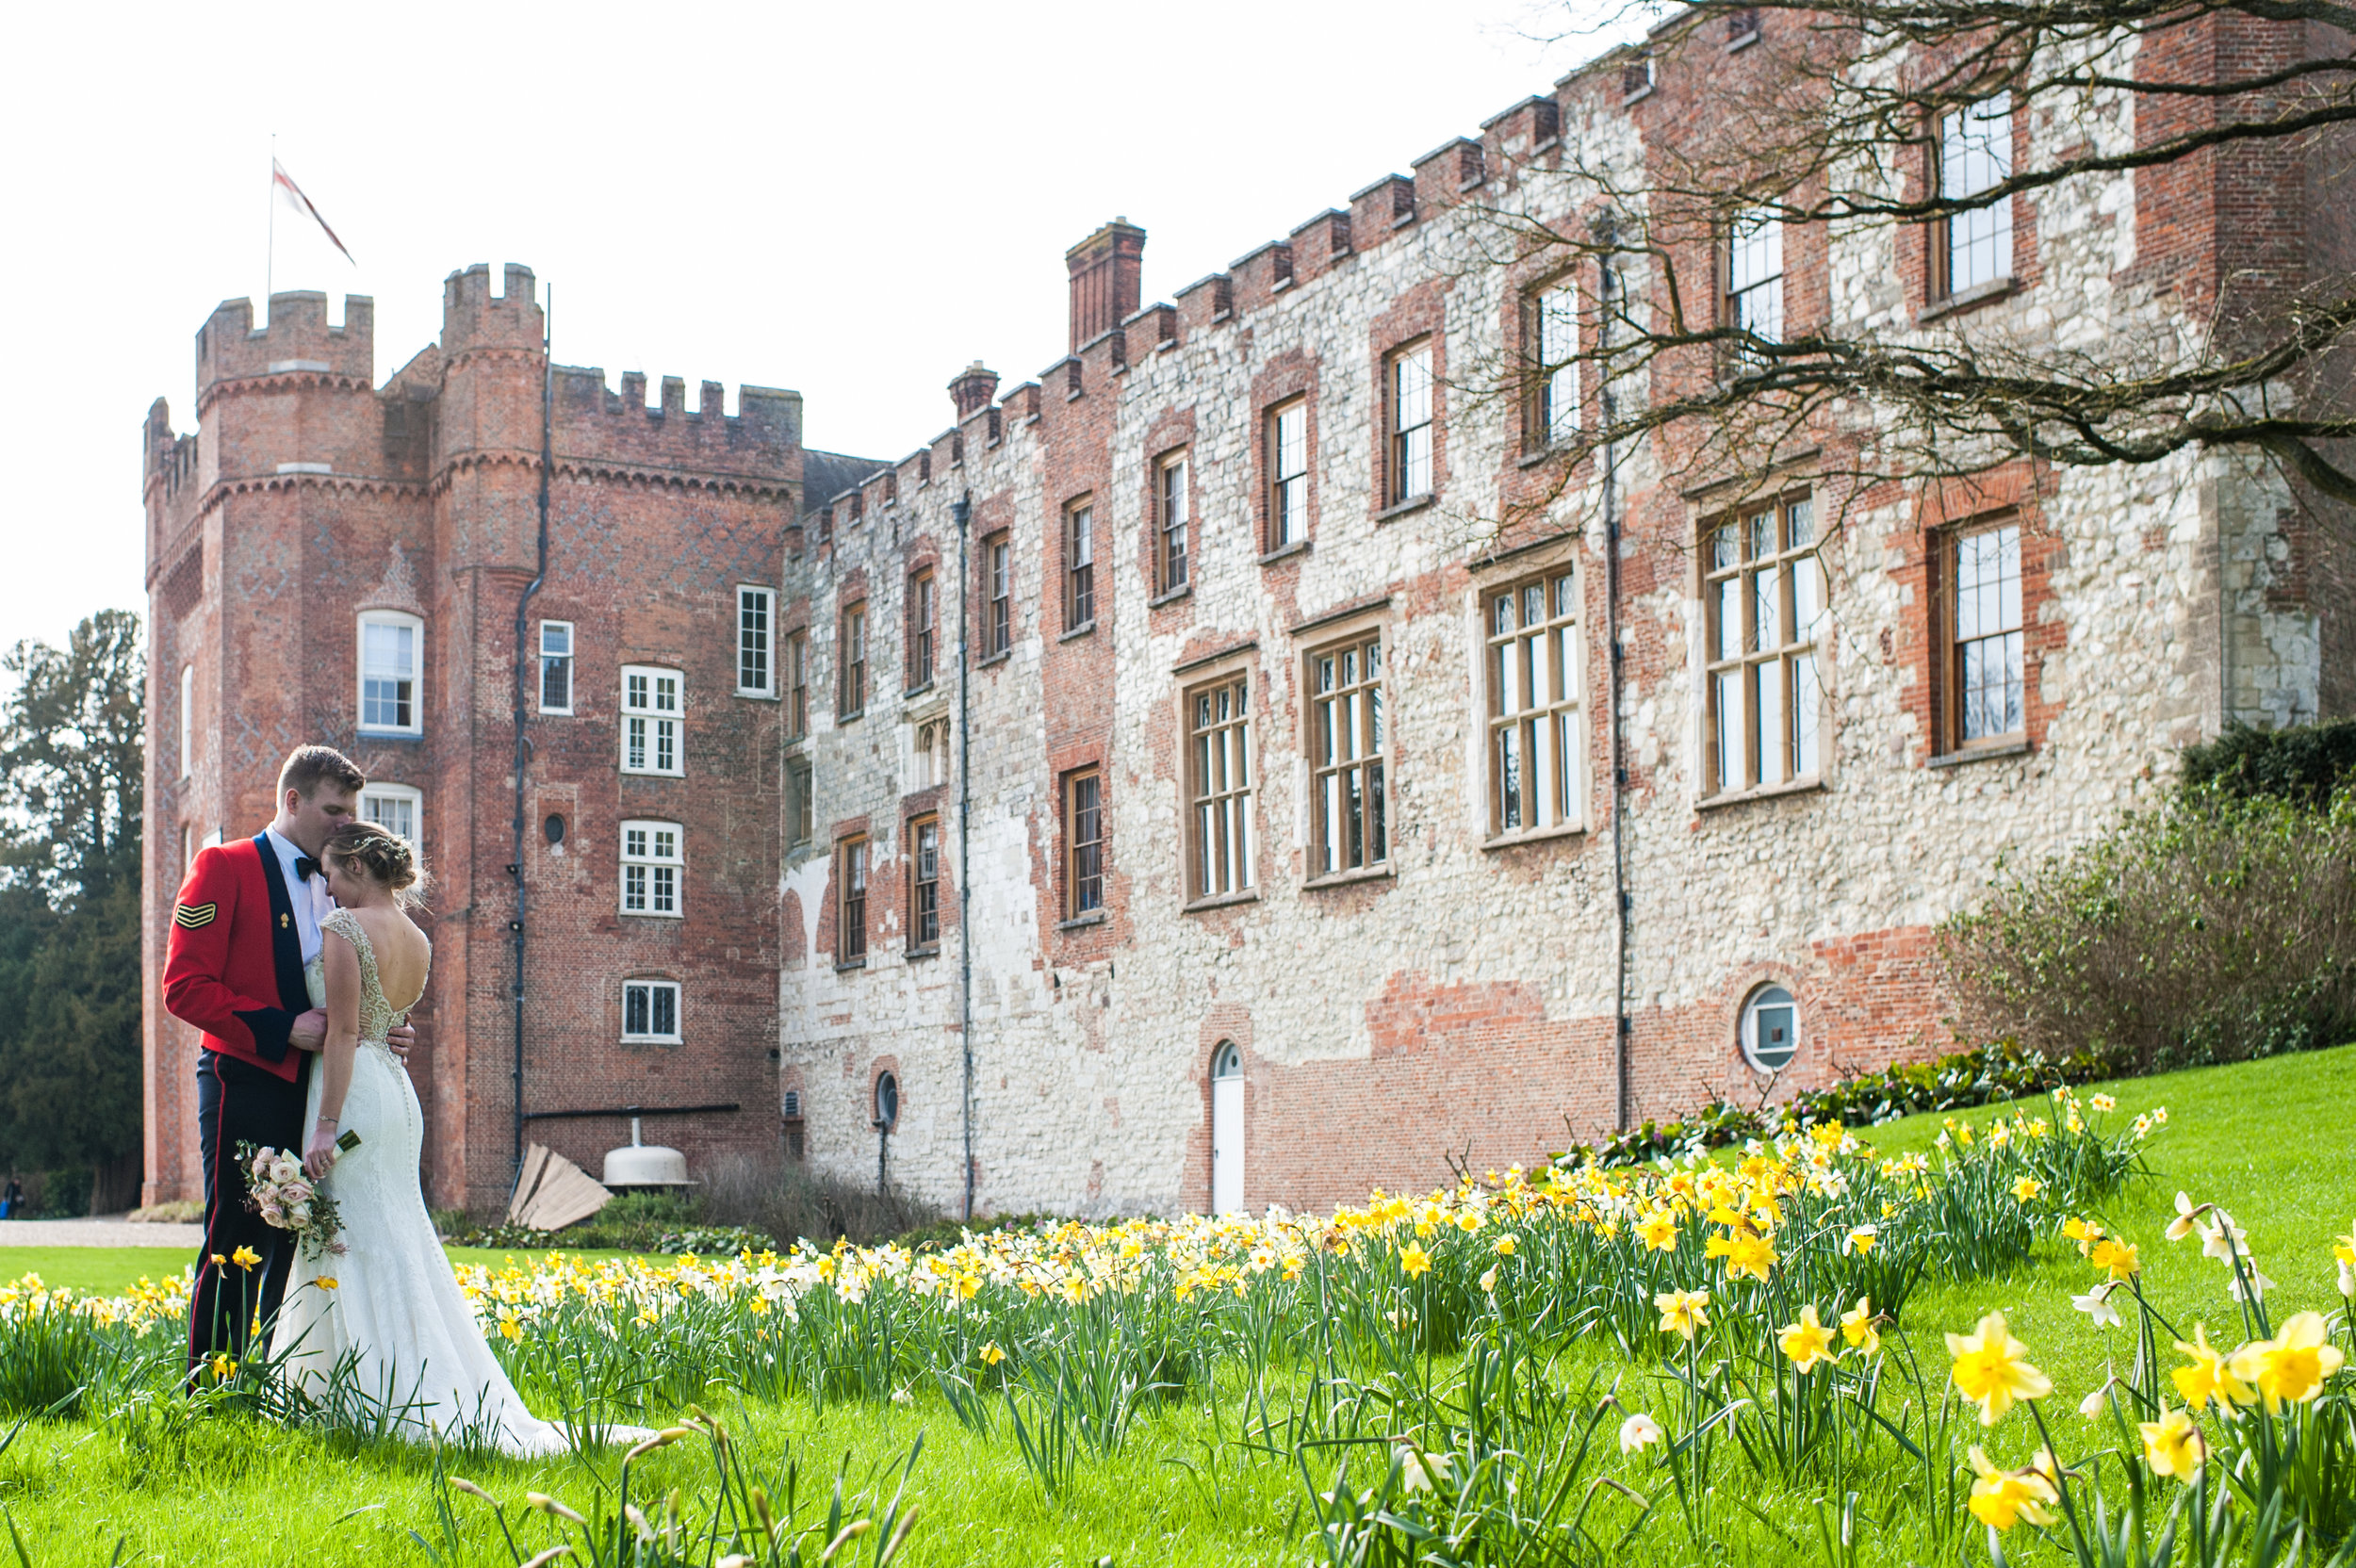 Castle Weddings - A castle wedding is the perfect place for your modern fairy tale to come to life. Say your vows amid centuries of history, and add your story to the hundreds that have gone before...it's enough to give you shivers up your spine, isn't it? Click below to see some of my favourite castle weddings.